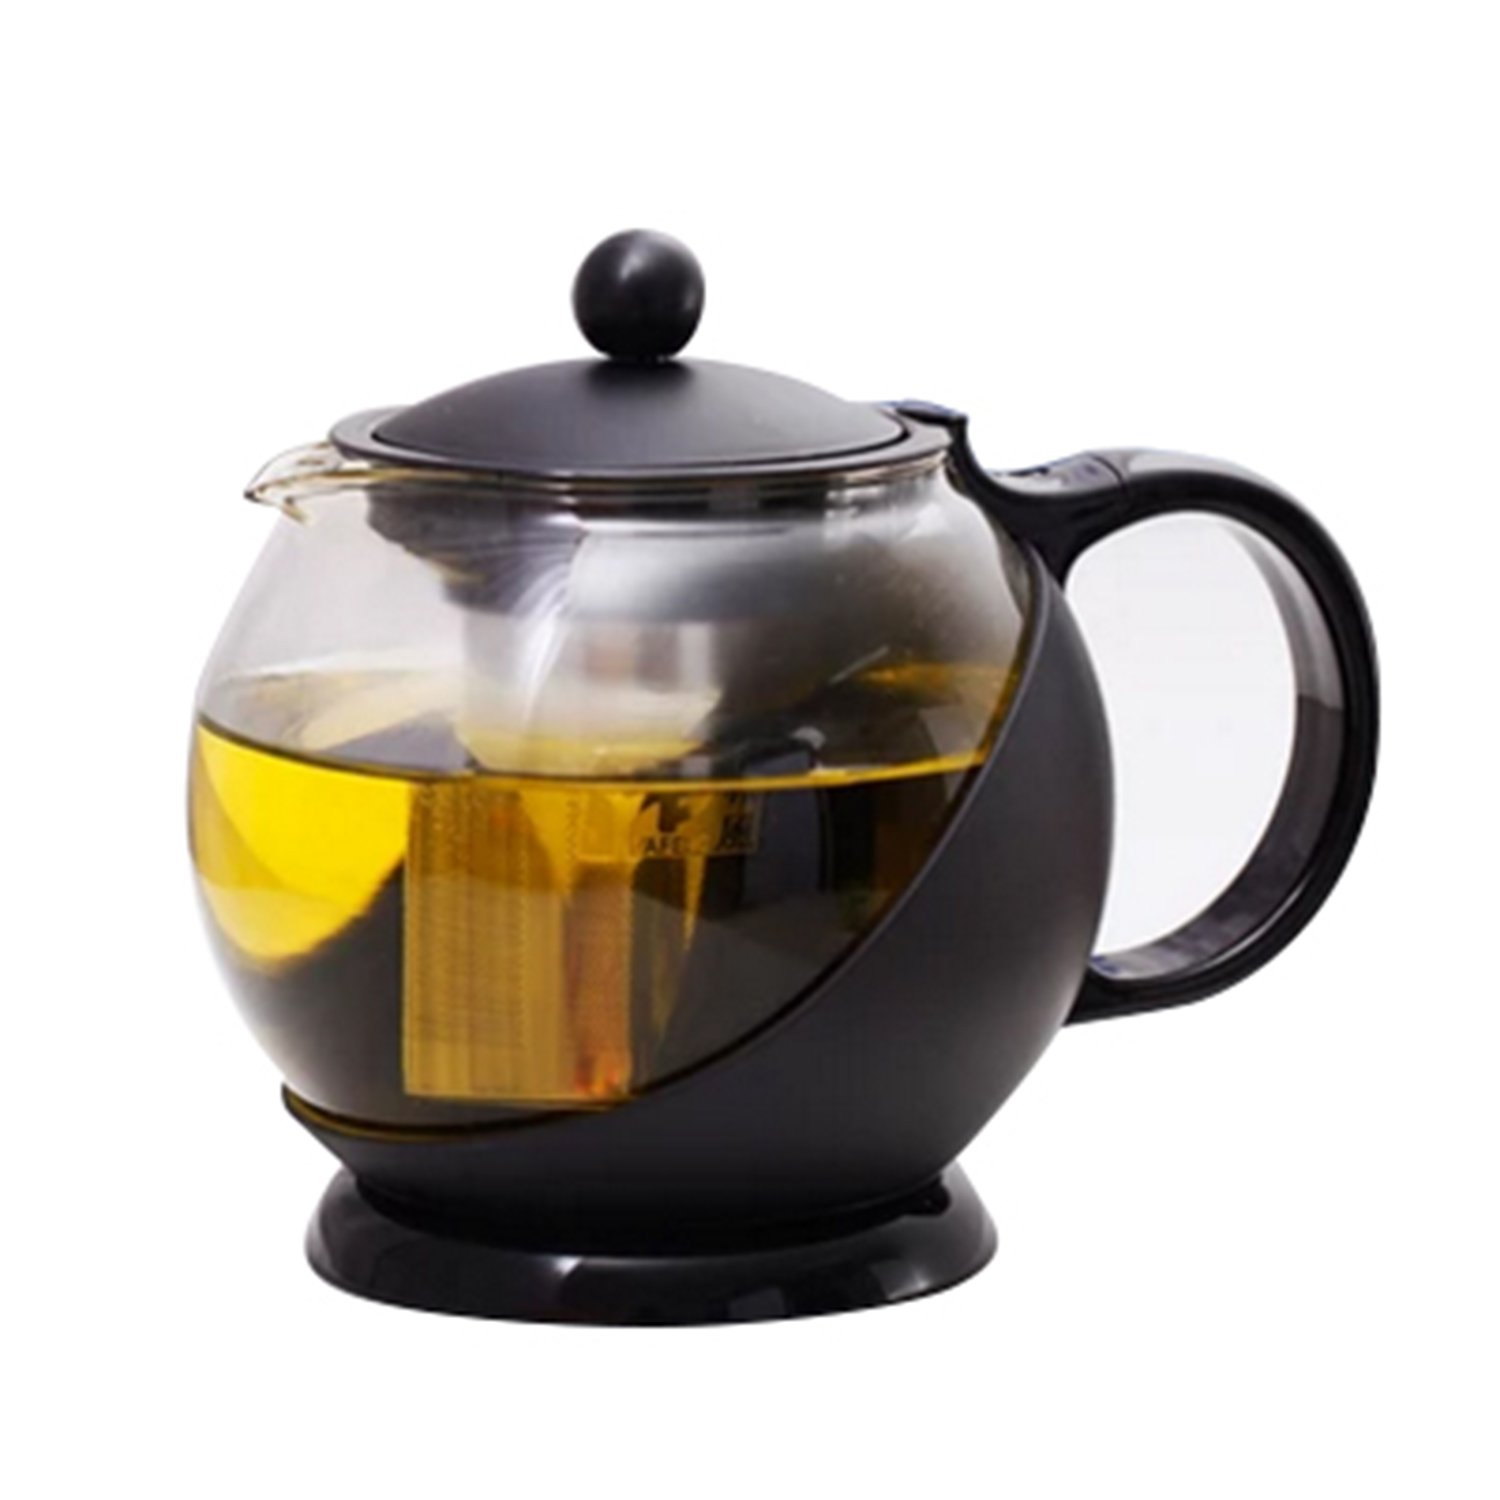 Tosnail 1250 ml Stunning Glass Tea Pot with Removable Rust Free Mesh Infuser - Large Enough for 4 to 5 Cups of Tea T-GlassTeaPot-1250ml